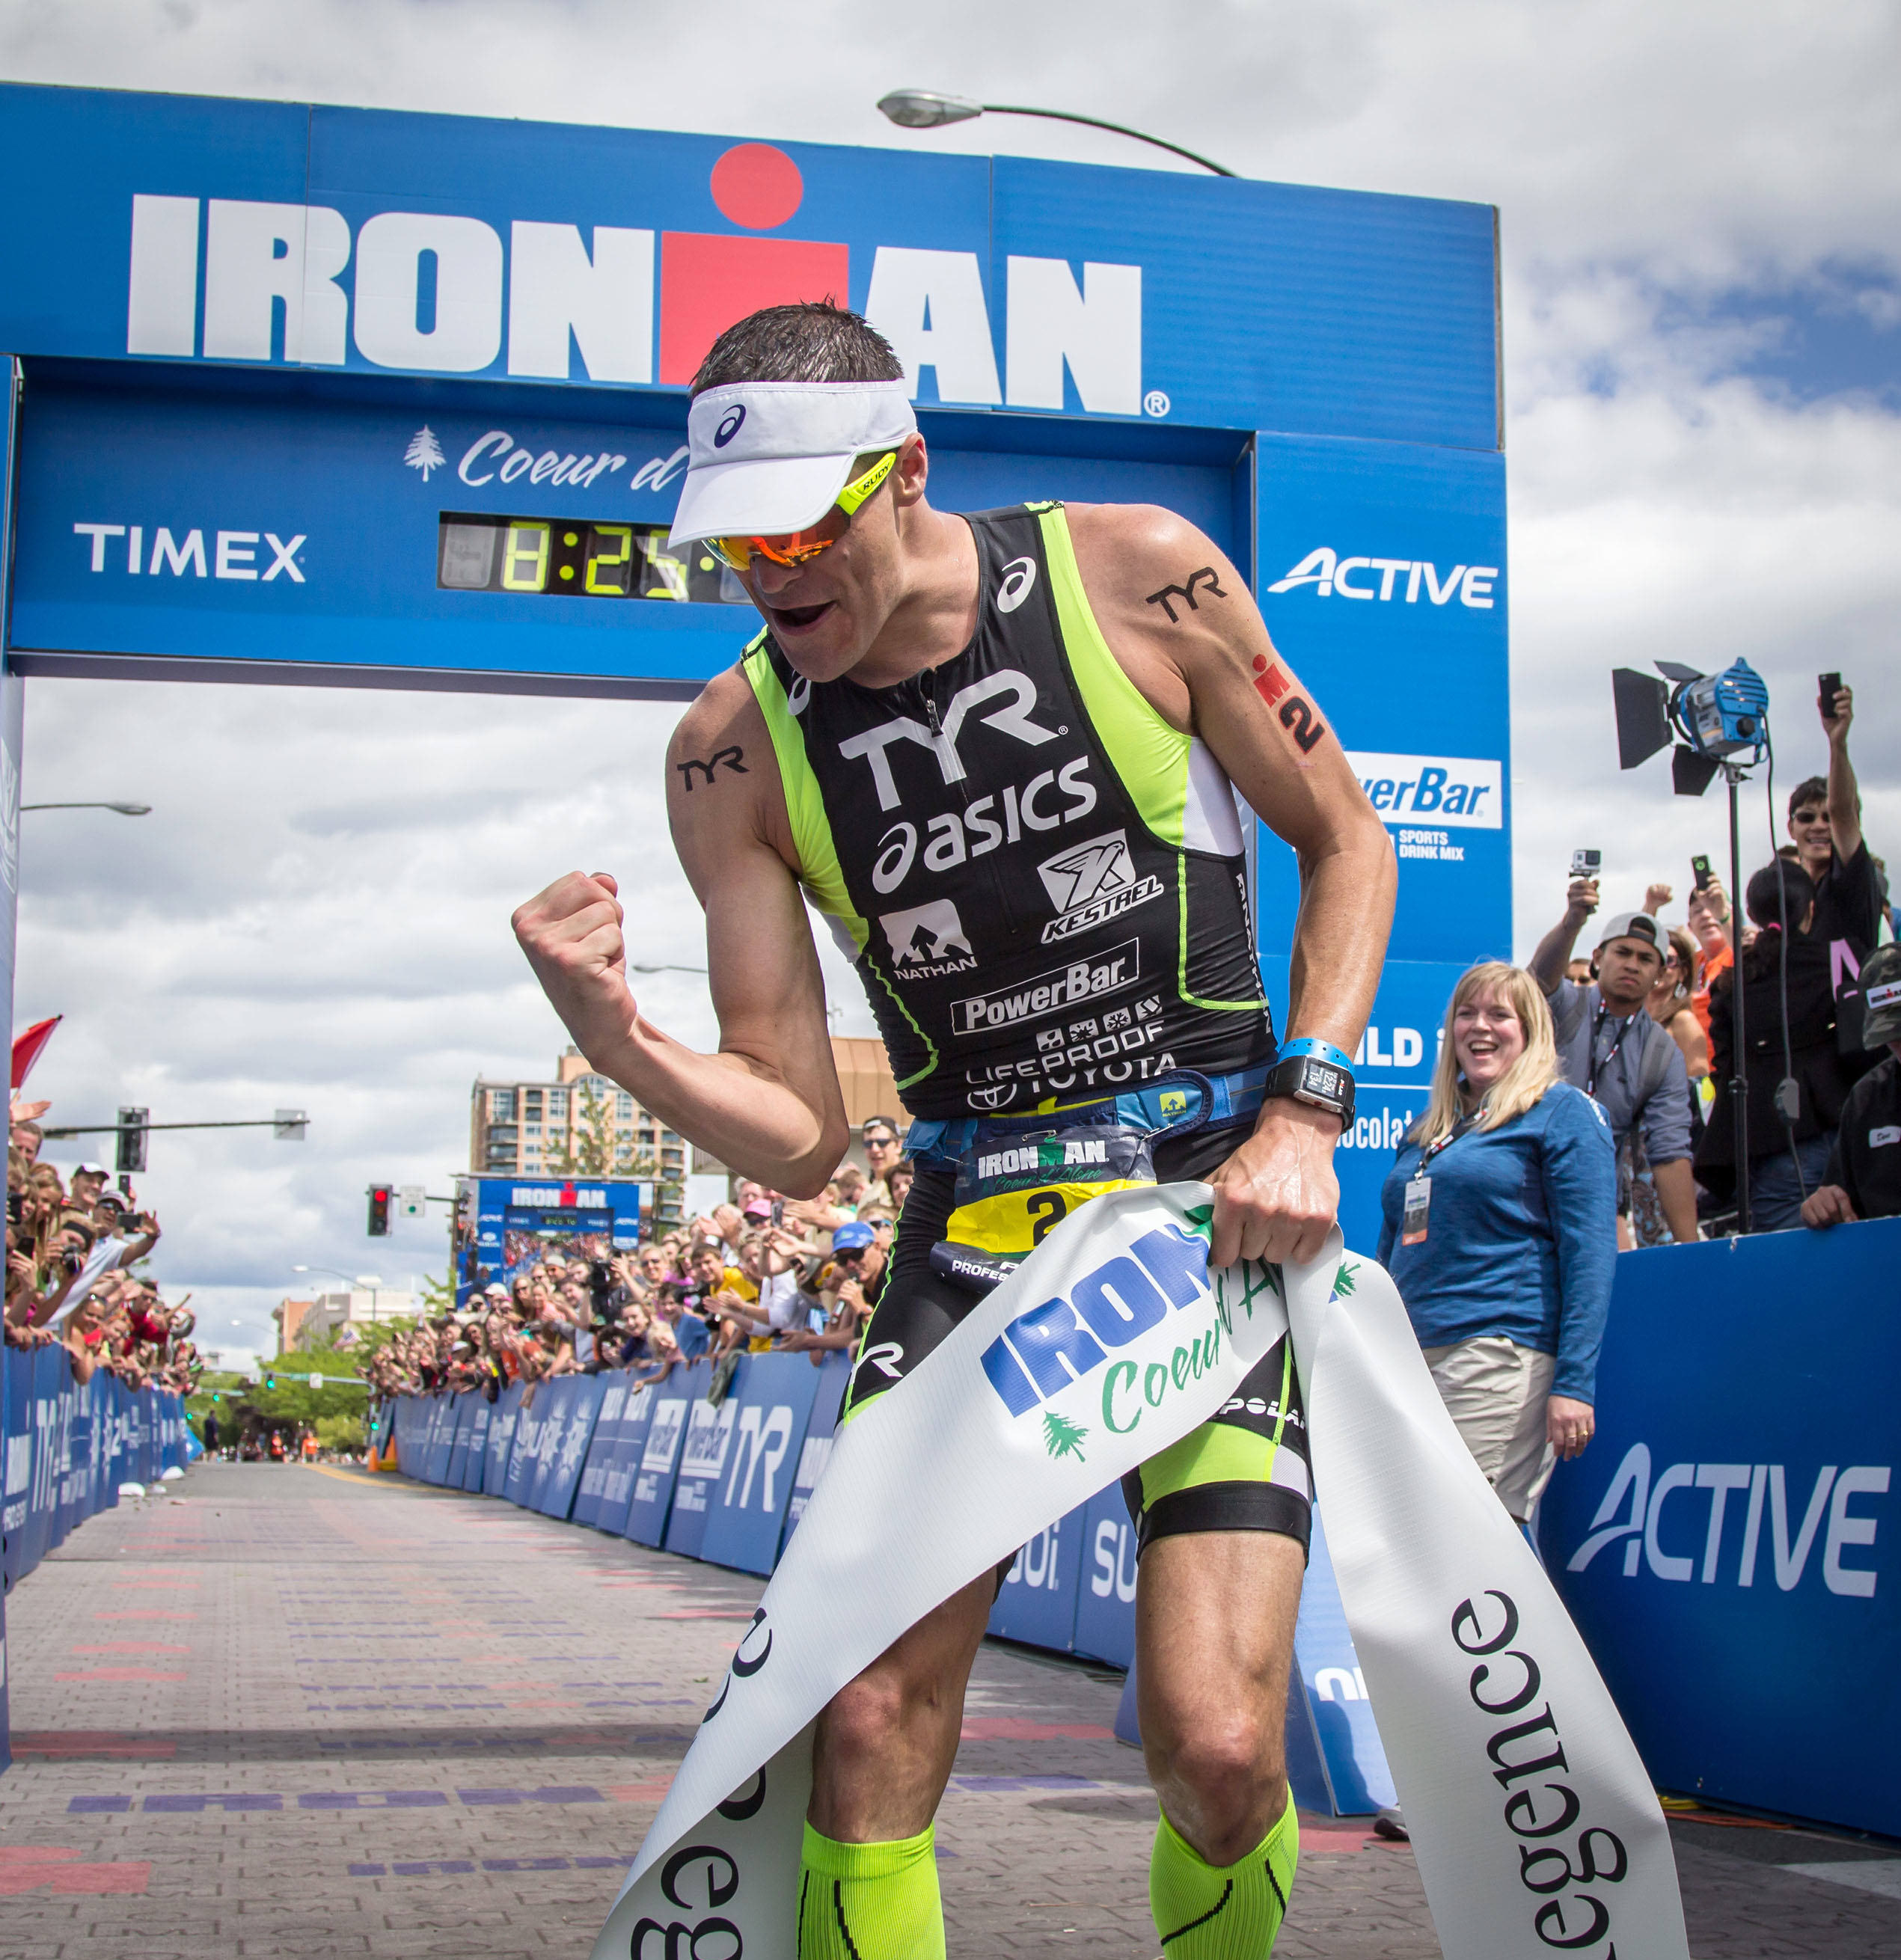 Andy Potts, Heather Wurtele win Ironman Coeur d'Alene | The